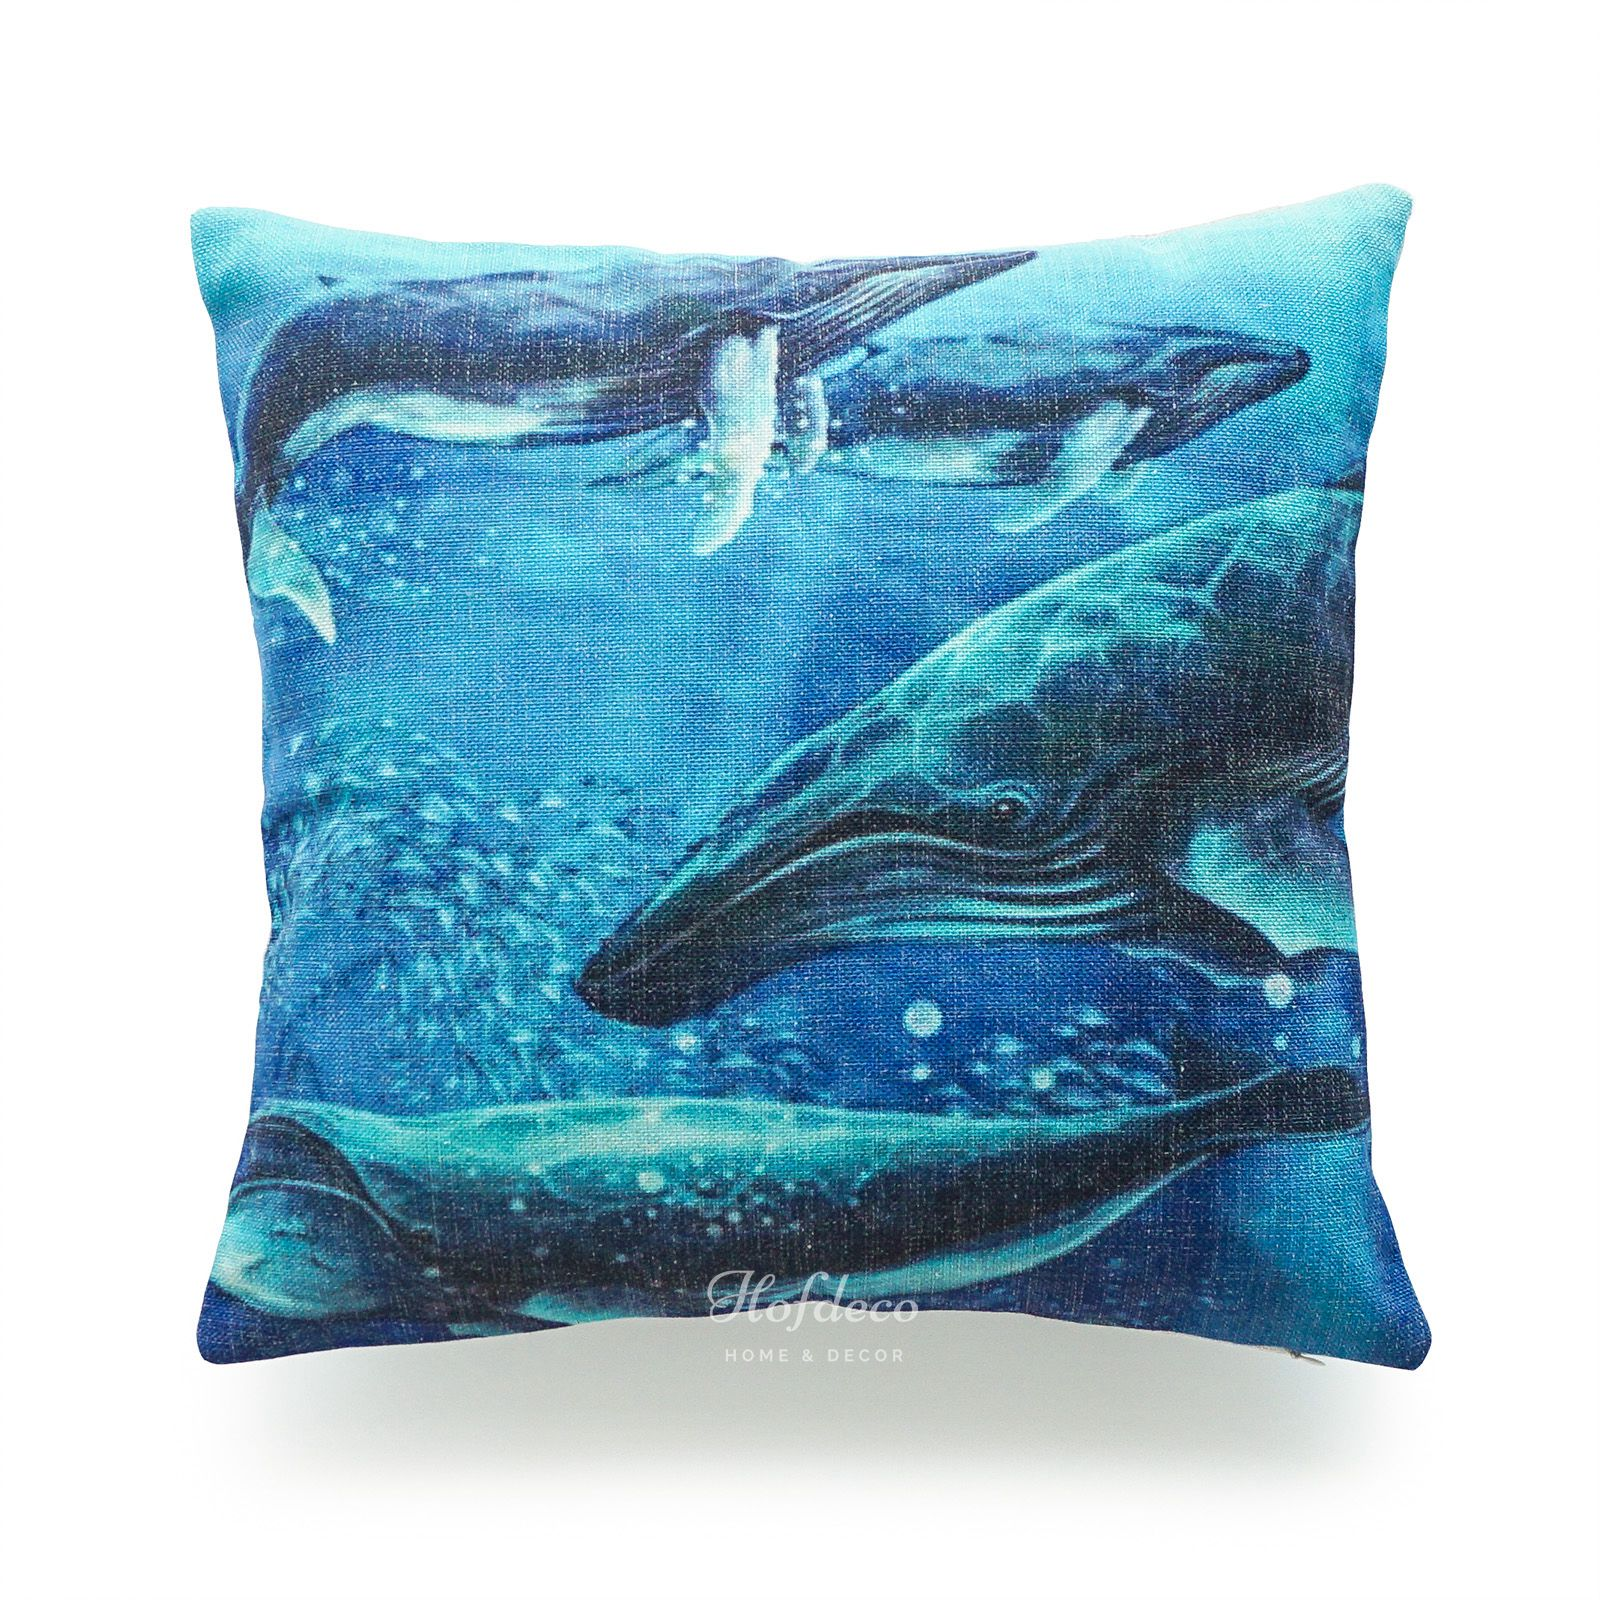 Nautical Throw Pillow Cases : Hofdeco Ocean Coastal Beach Nautical Watercolor Throw Pillow Case Cushion Cover eBay